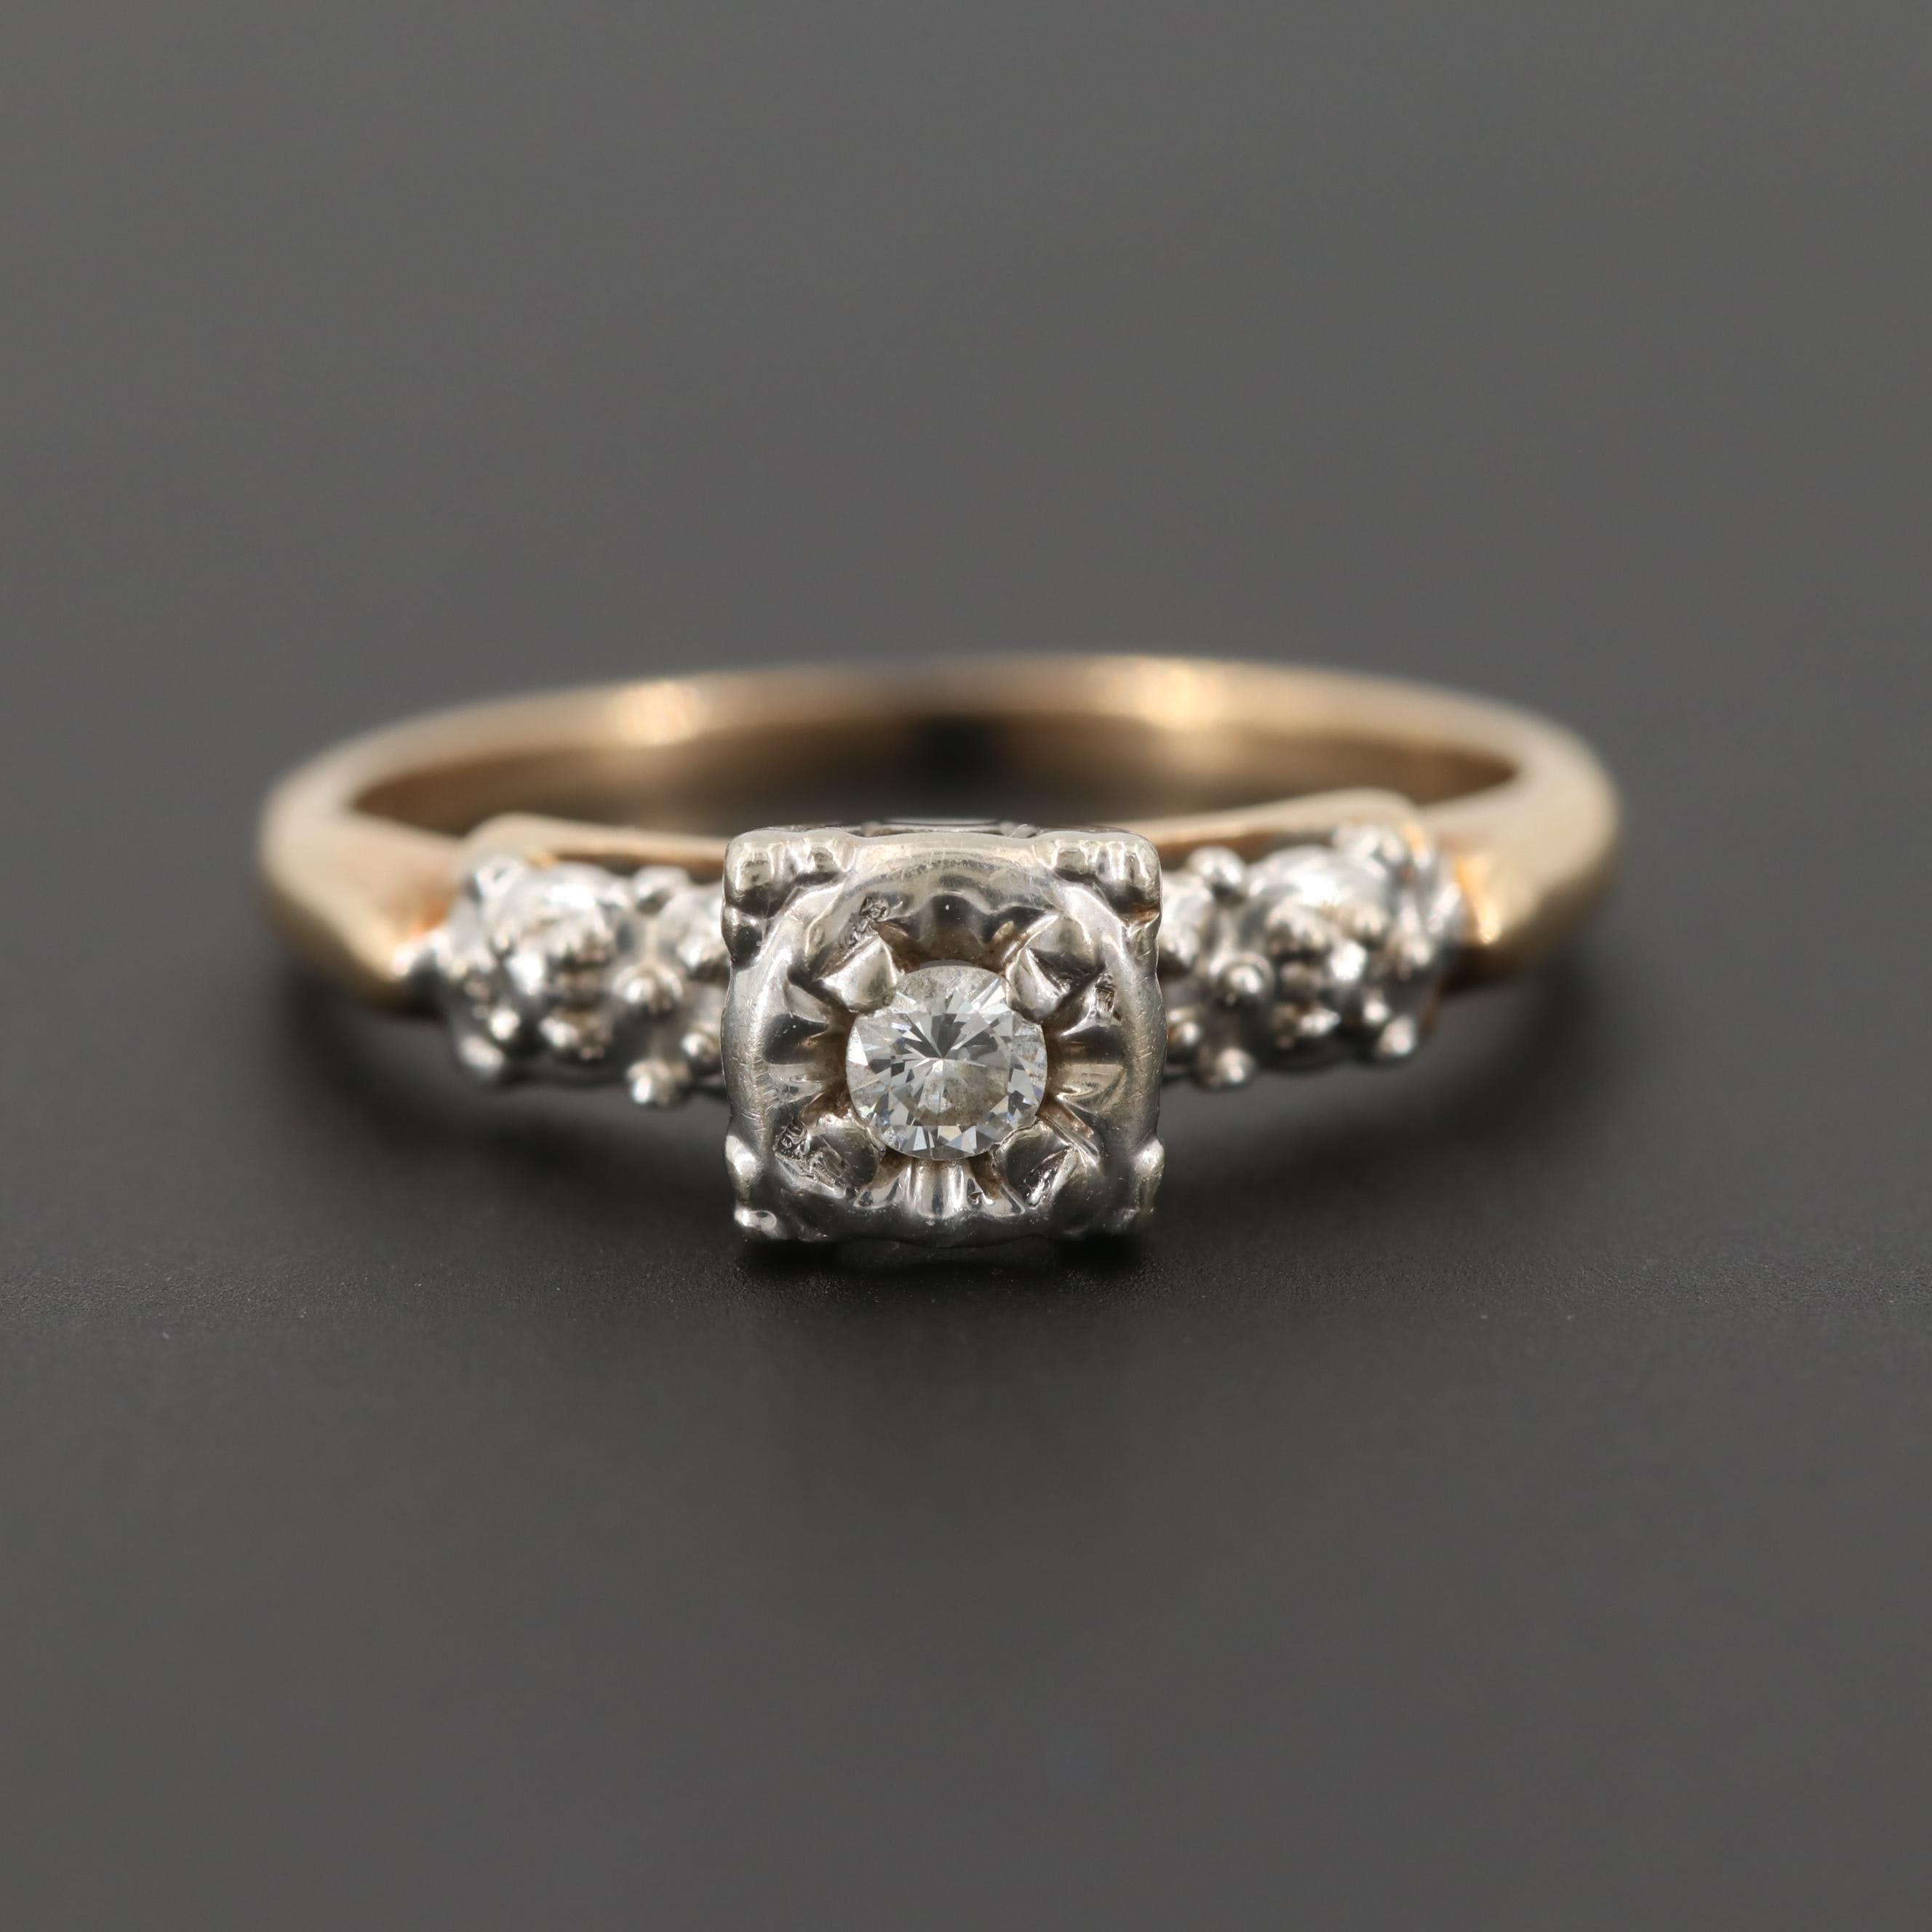 14K Yellow Gold Diamond Ring with White Gold Accents